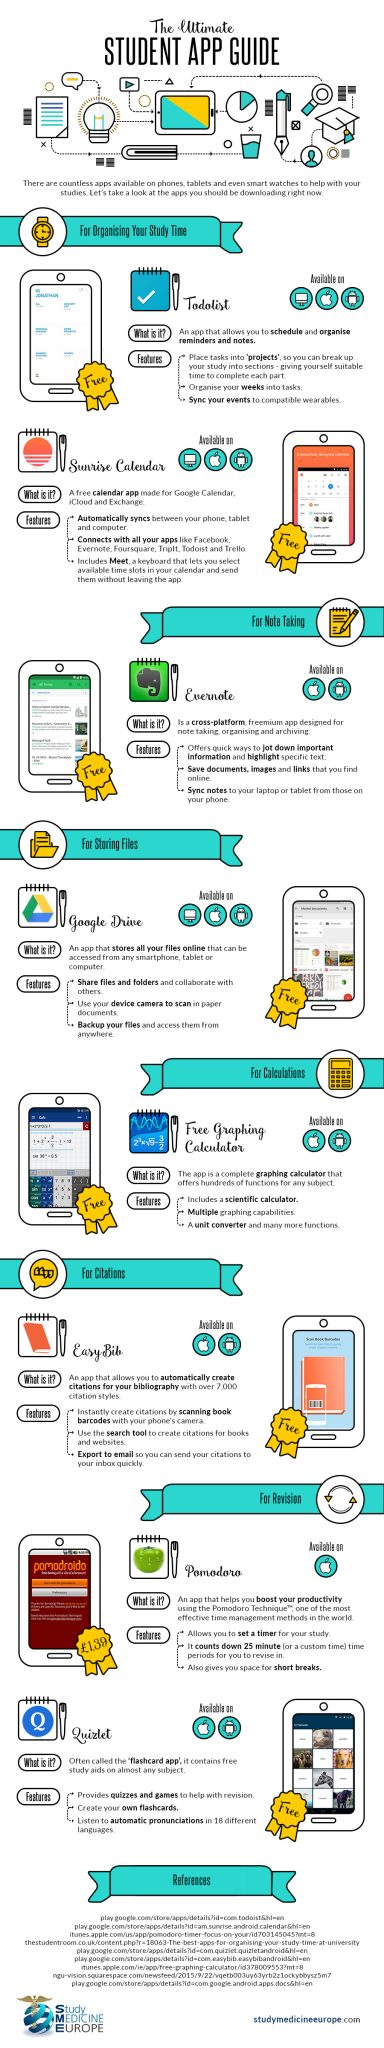 Ultimate Student App Guide, educational apps, student assistance, exam tips